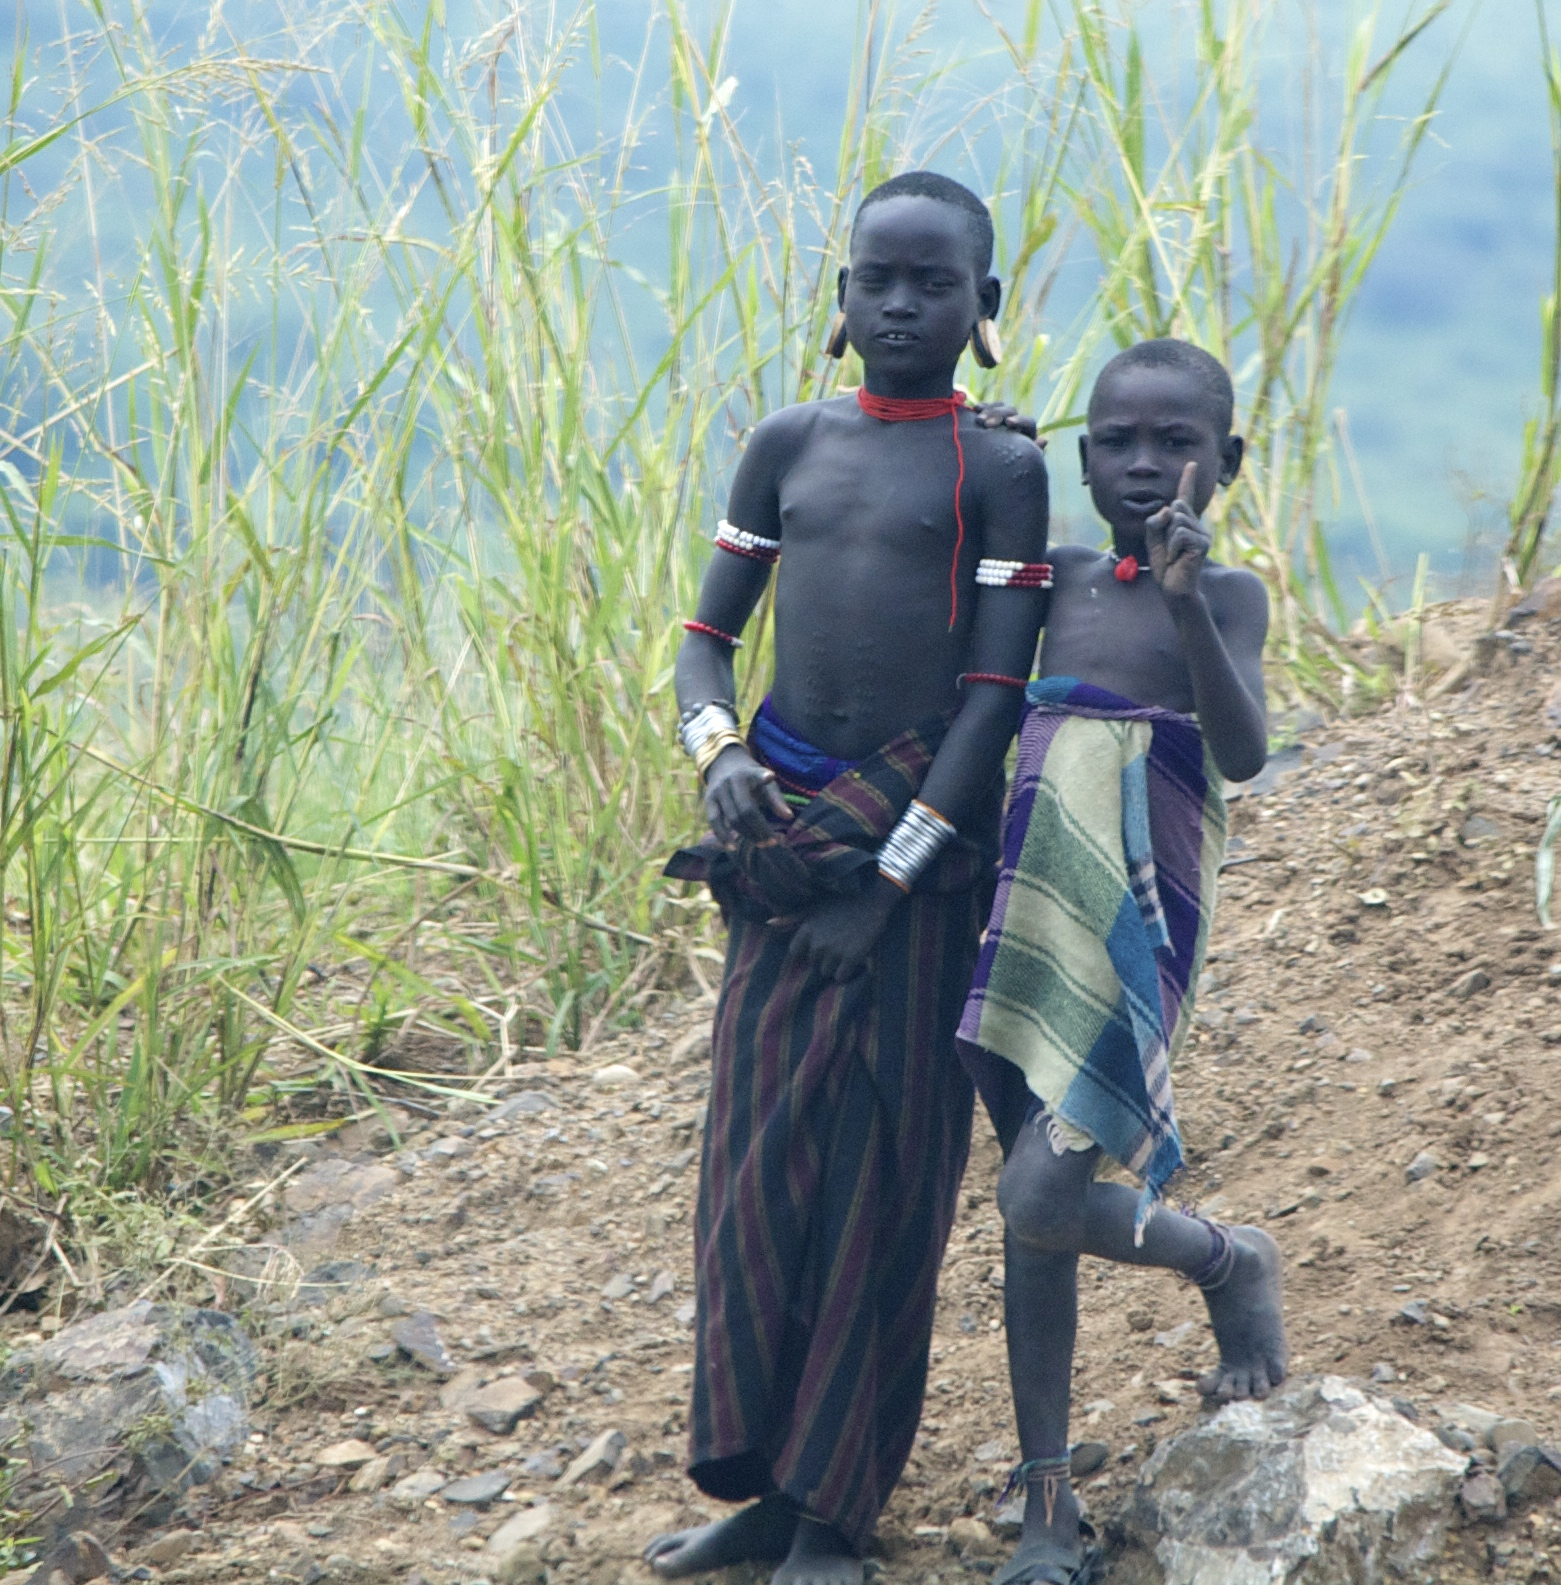 Boys from the Mursi tribe